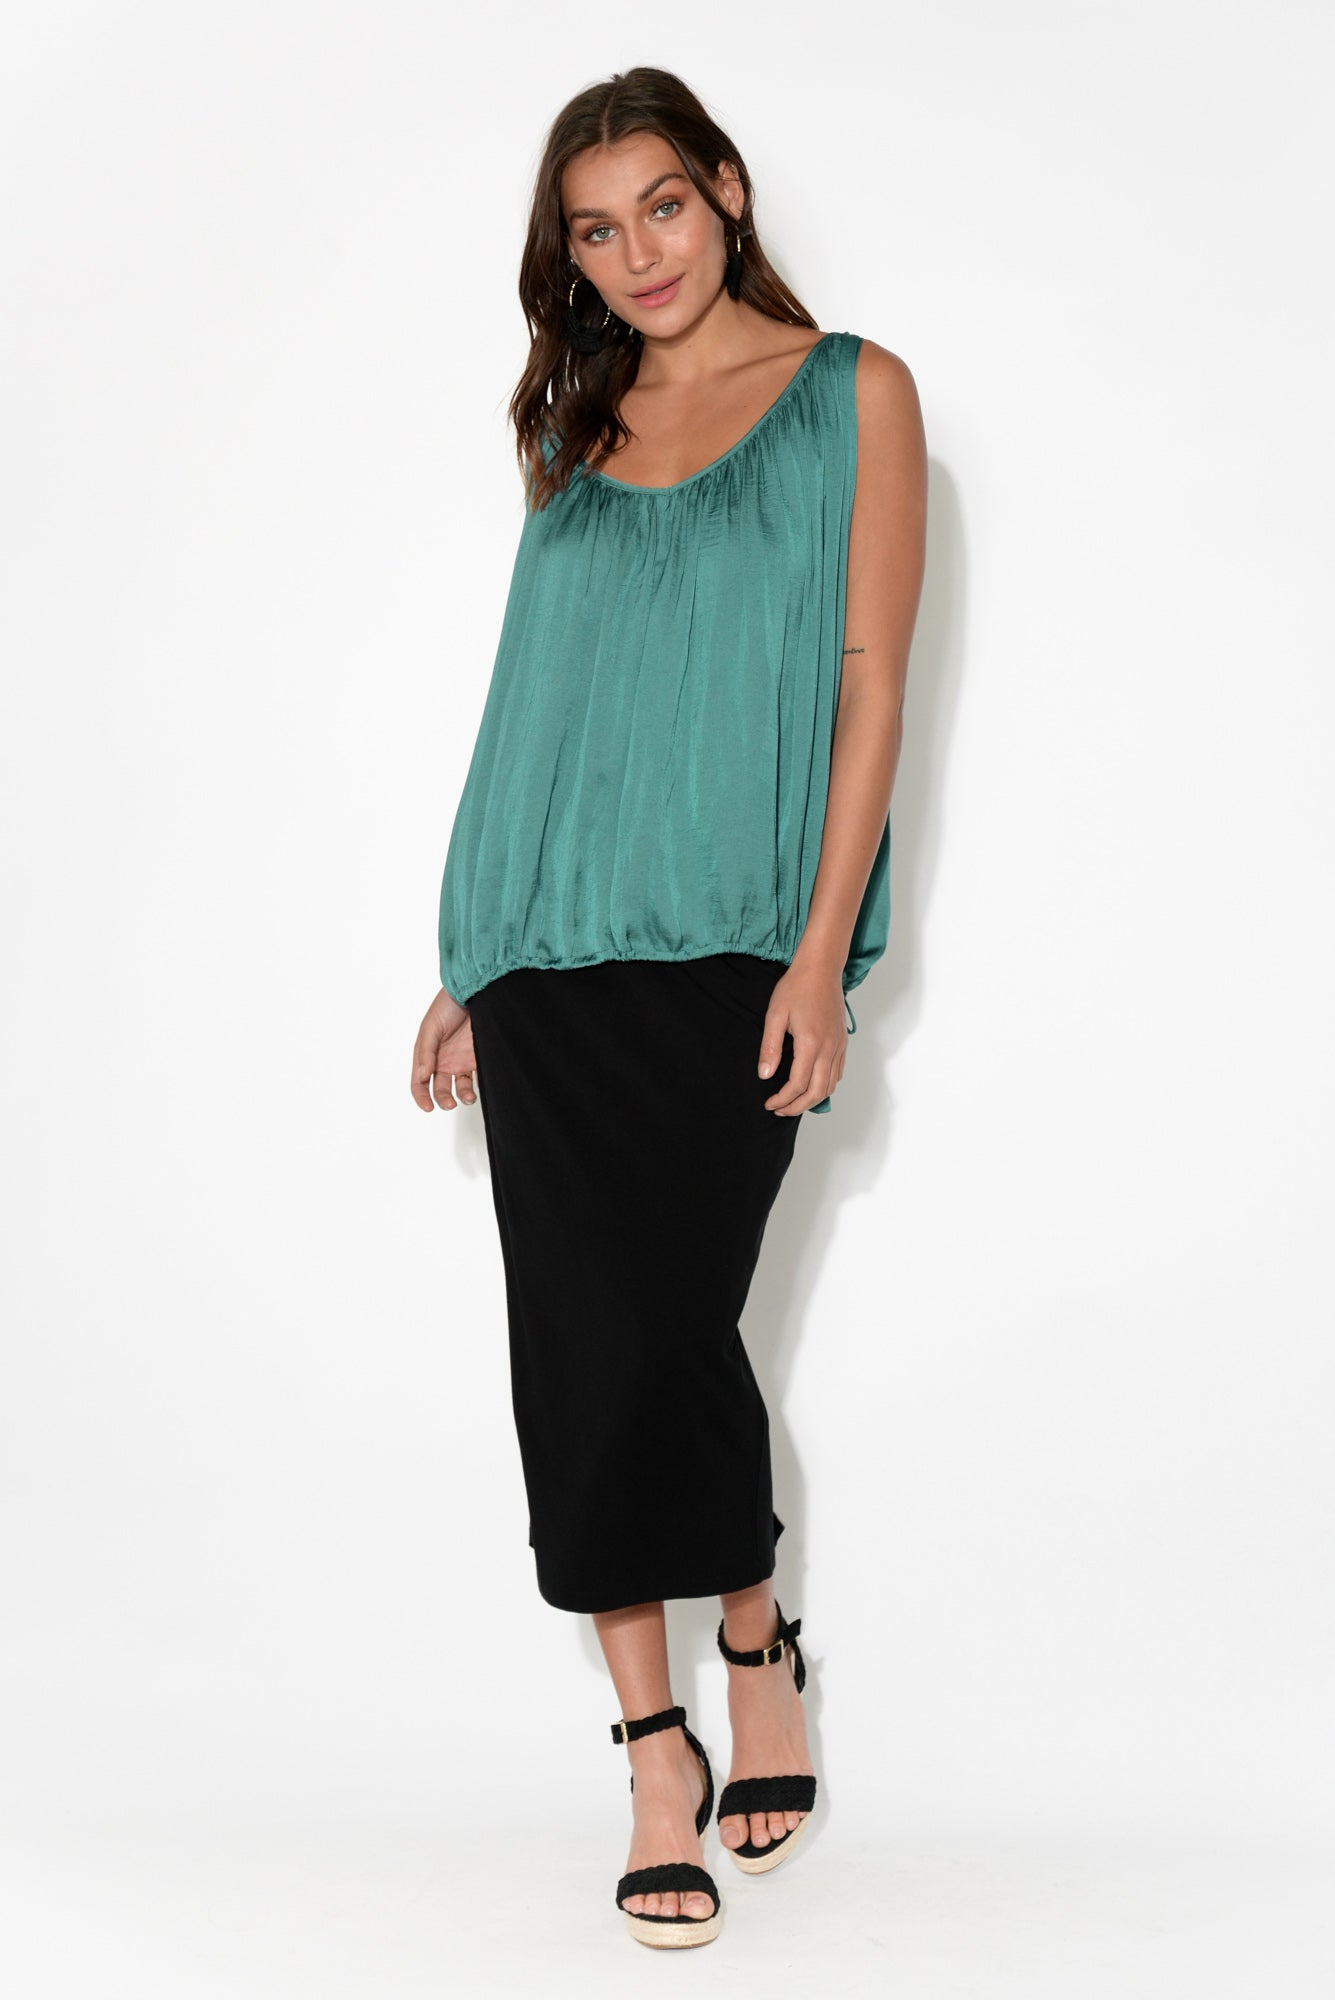 Adelia Teal Drawstring Top